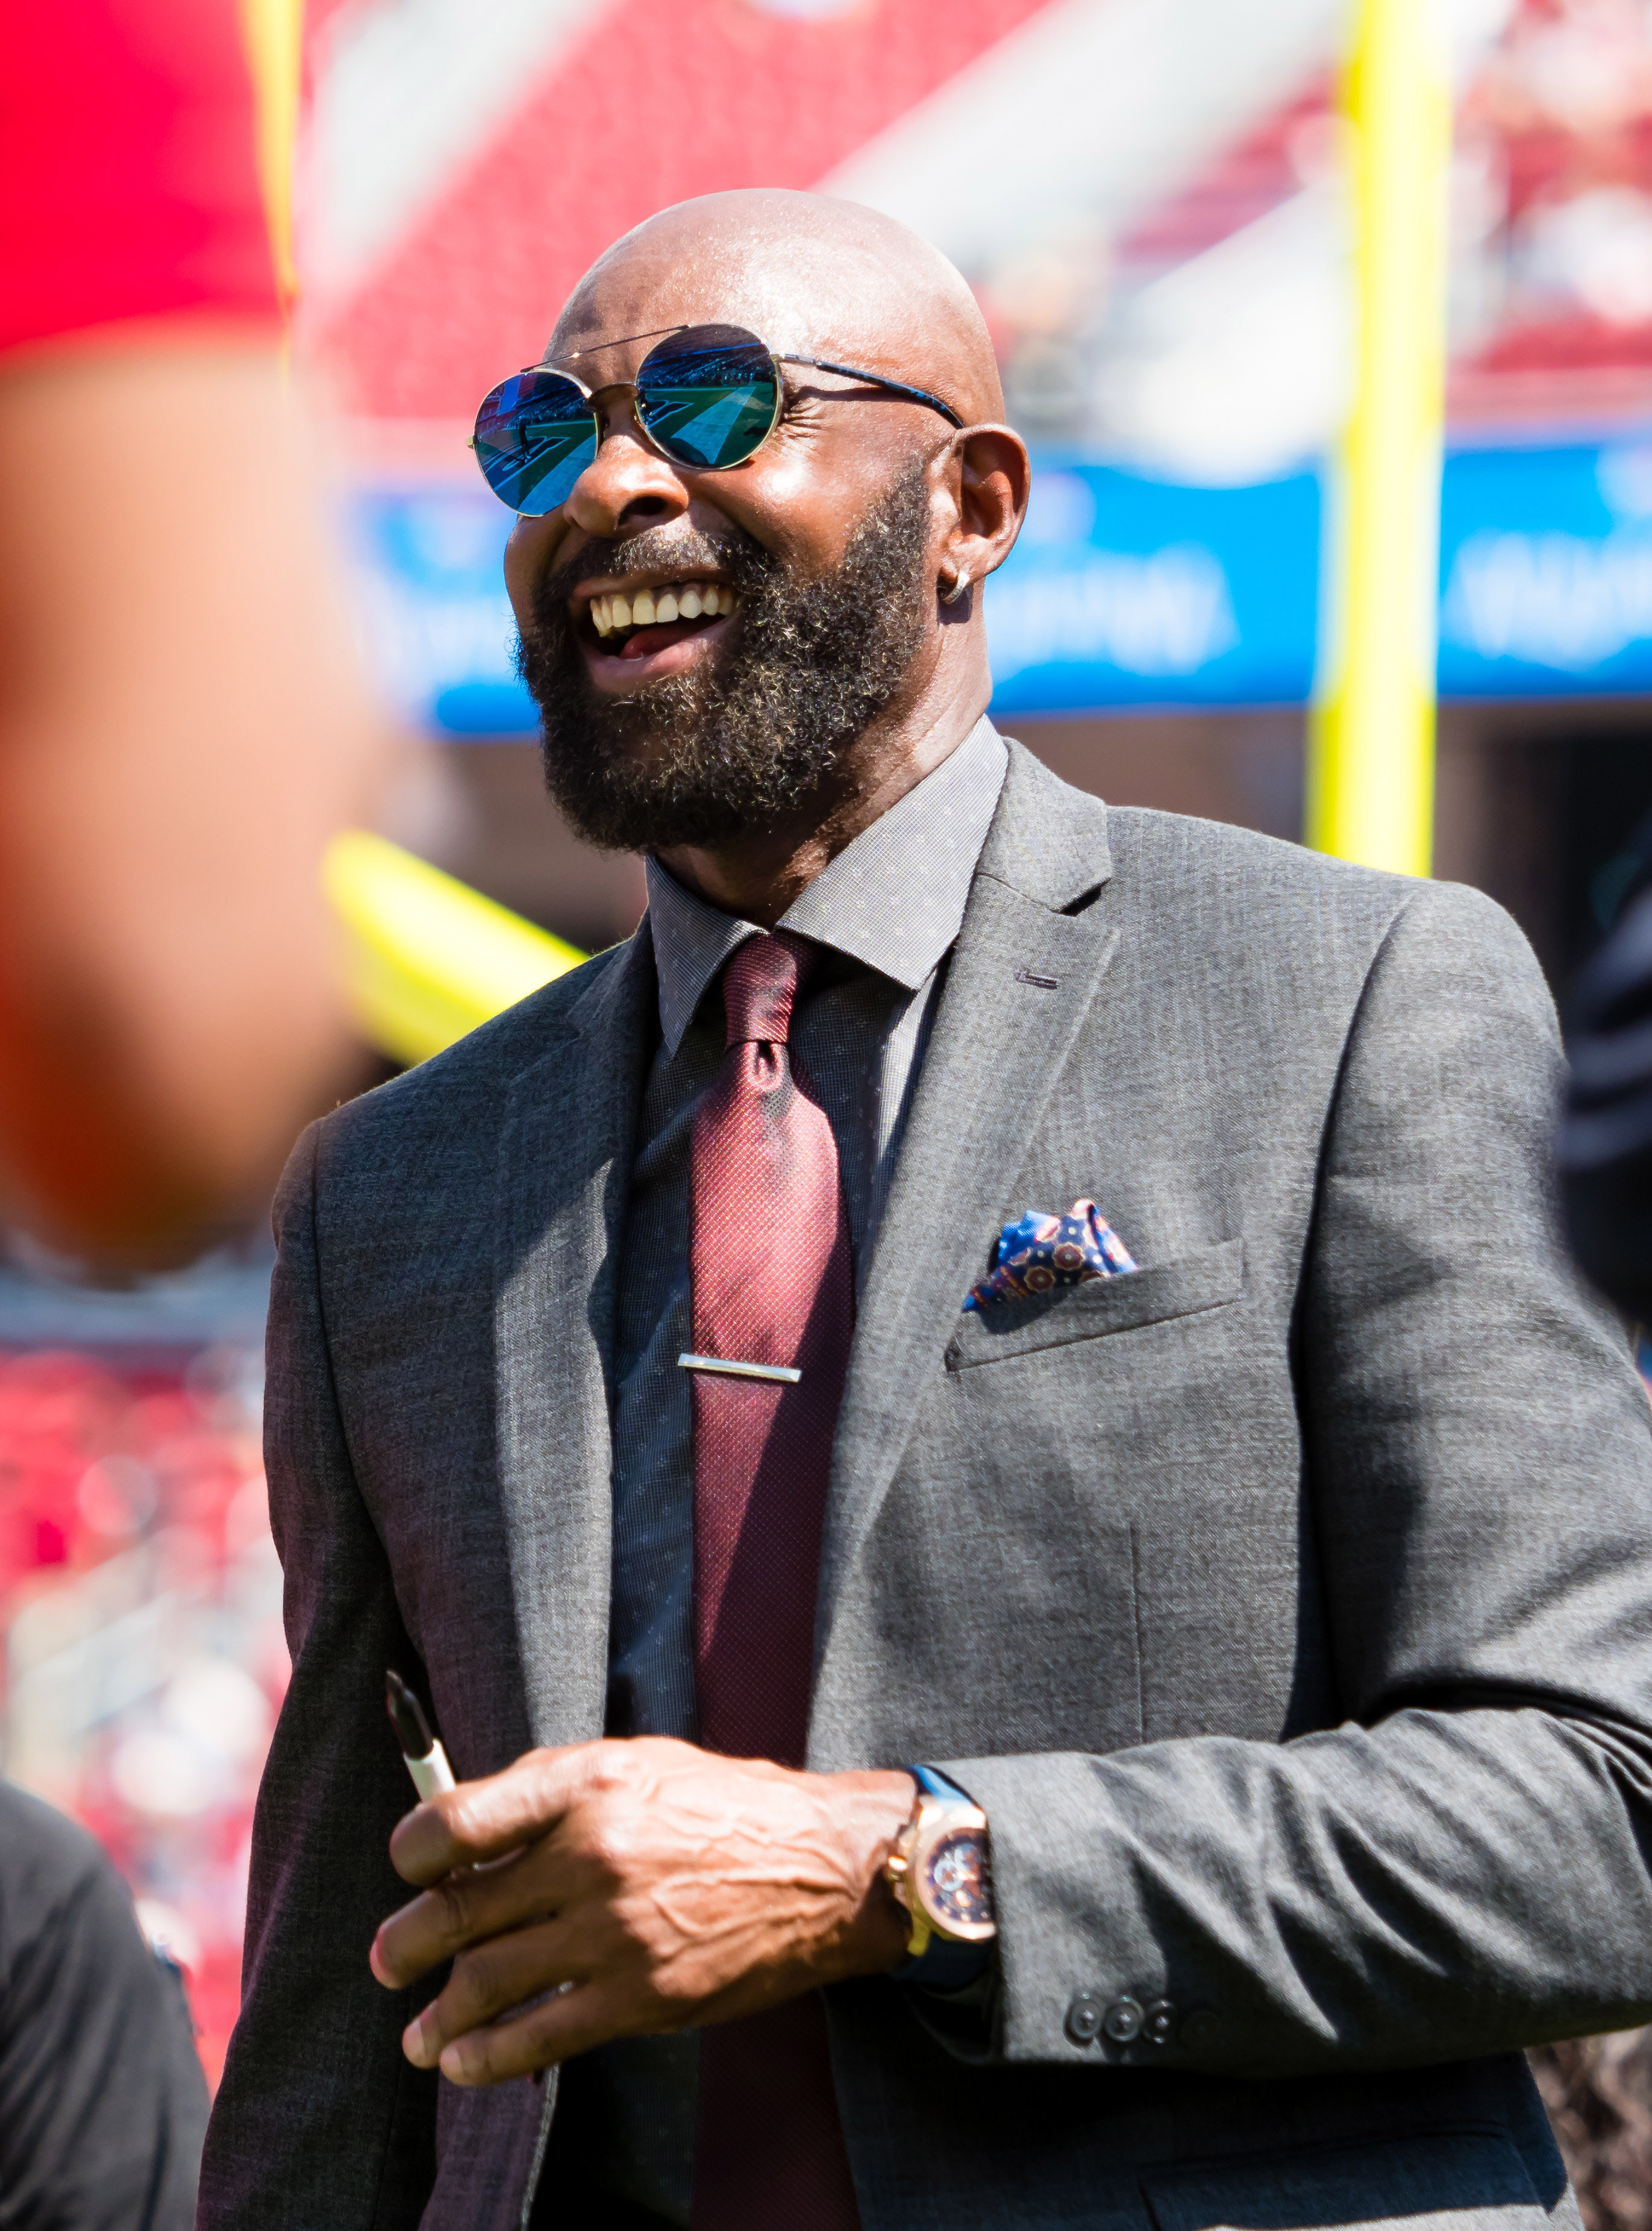 newest 8adf1 a8766 This Date In Transactions History: Broncos Sign Jerry Rice